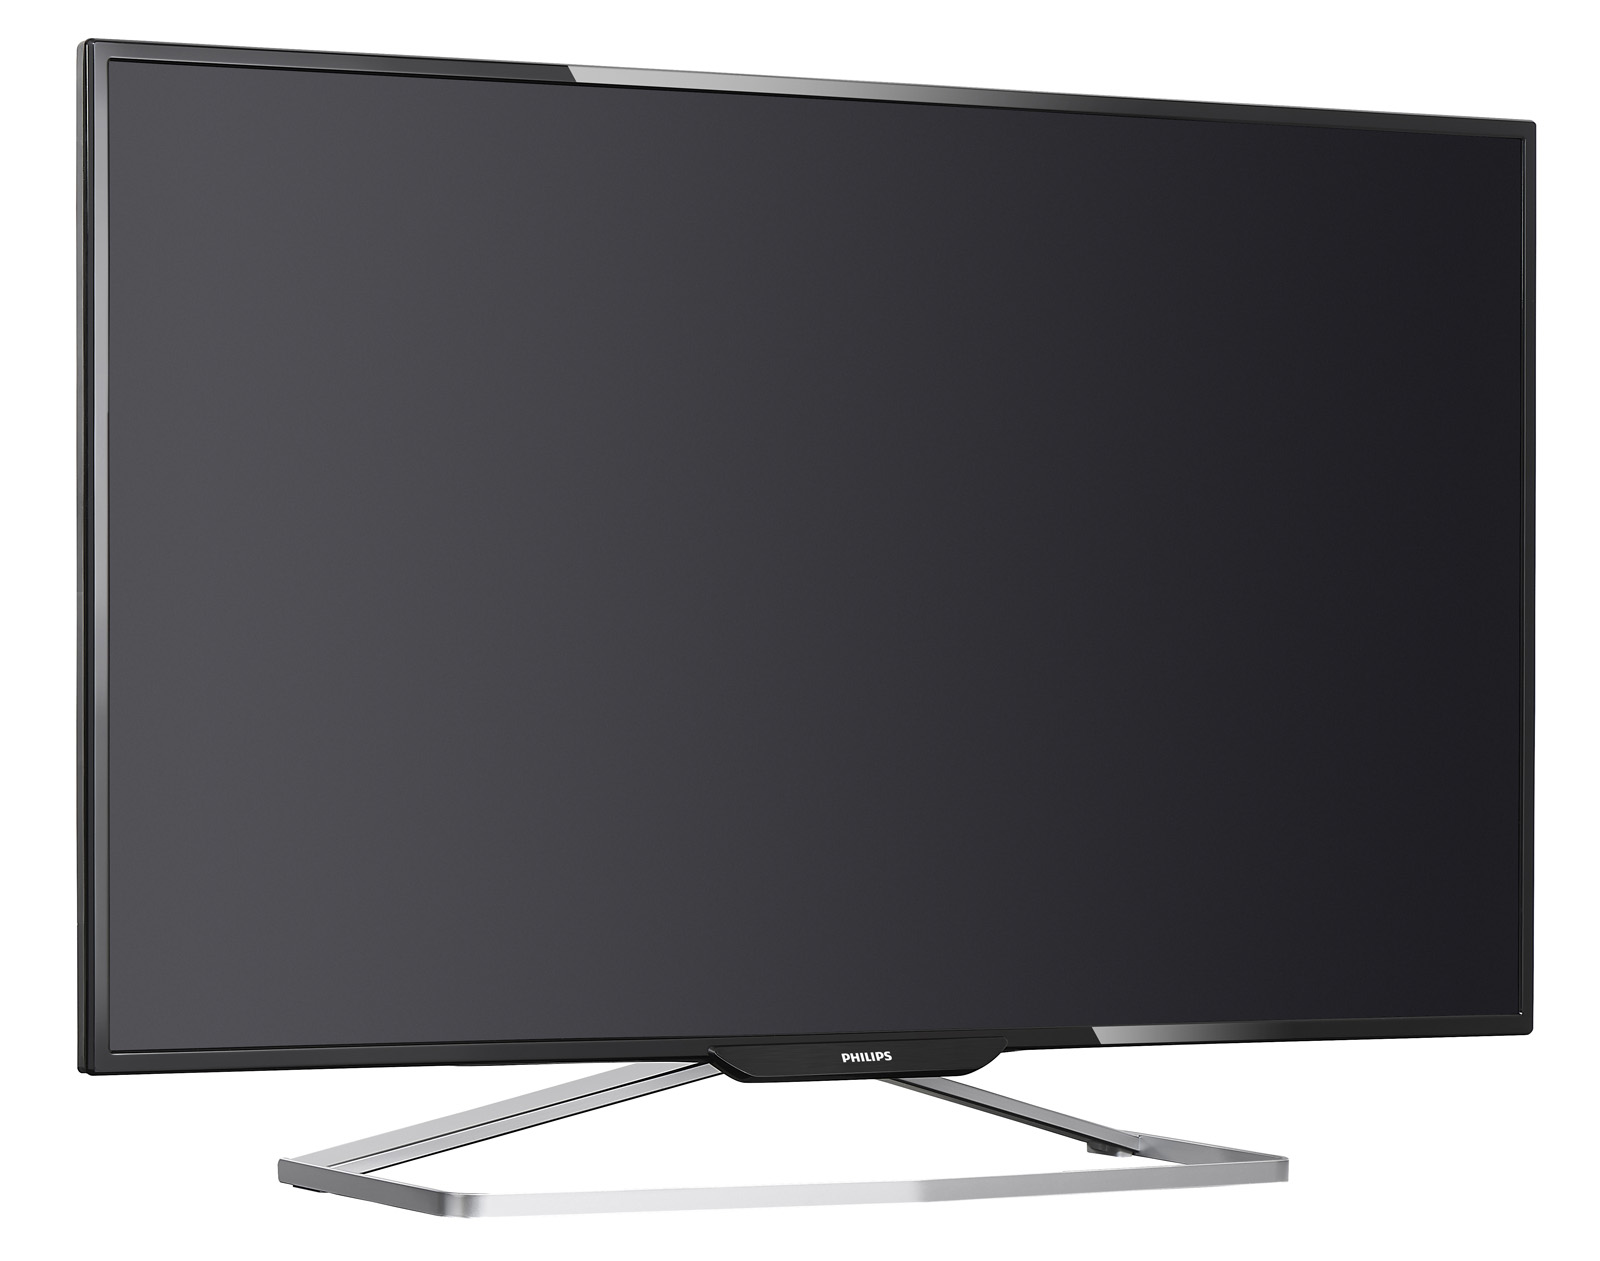 philips bdm4065uc 40 calowy monitor 4k. Black Bedroom Furniture Sets. Home Design Ideas